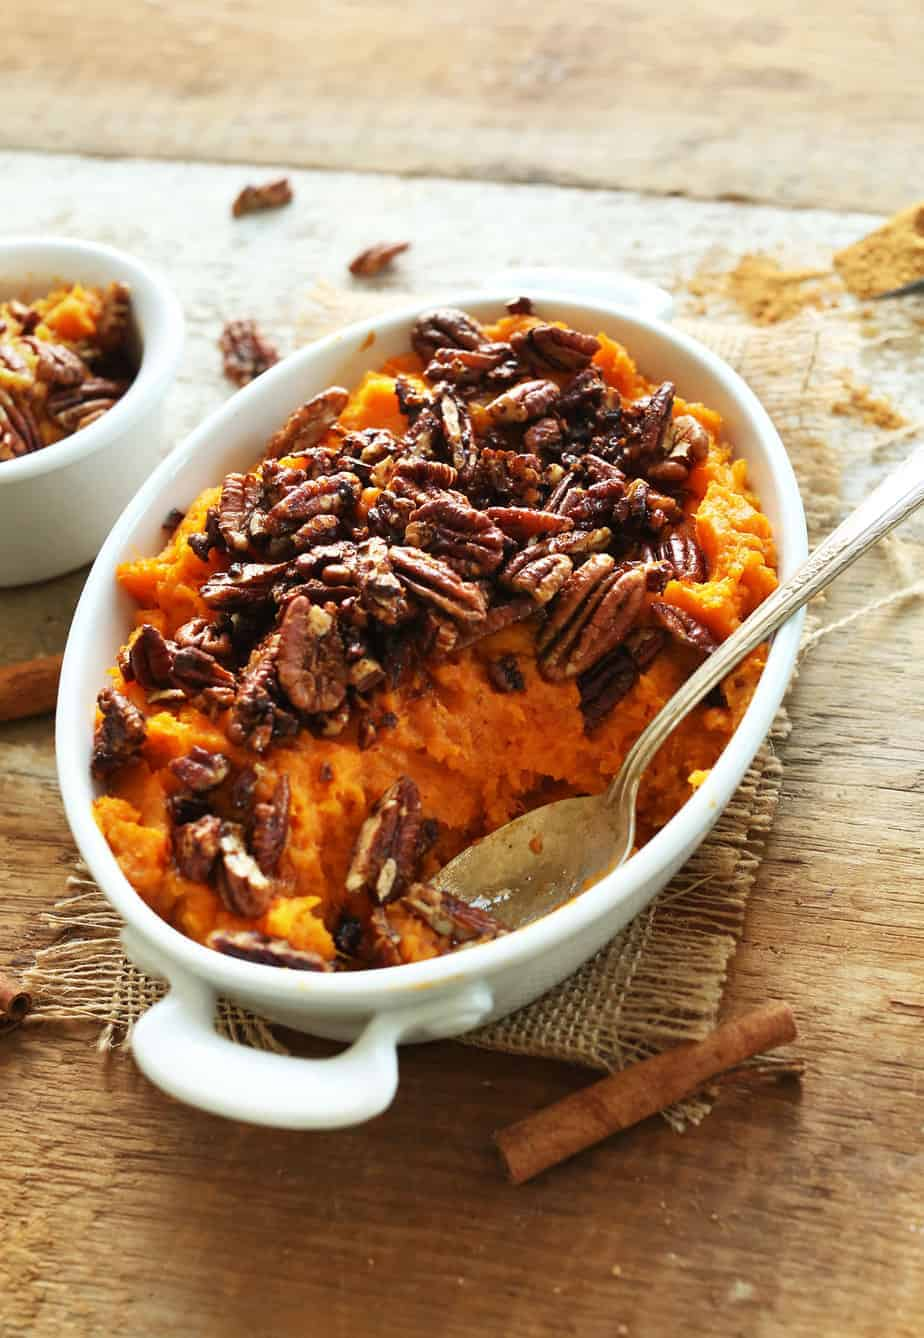 Butternut-Squash-Sweet-Potato-Mash-with-Maple-Cinnamon-Pecans-Perfect-for-fall-and-Thanskgiving-vegan-glutenfree-fall-thanksgiving-healthy-recipe-fall